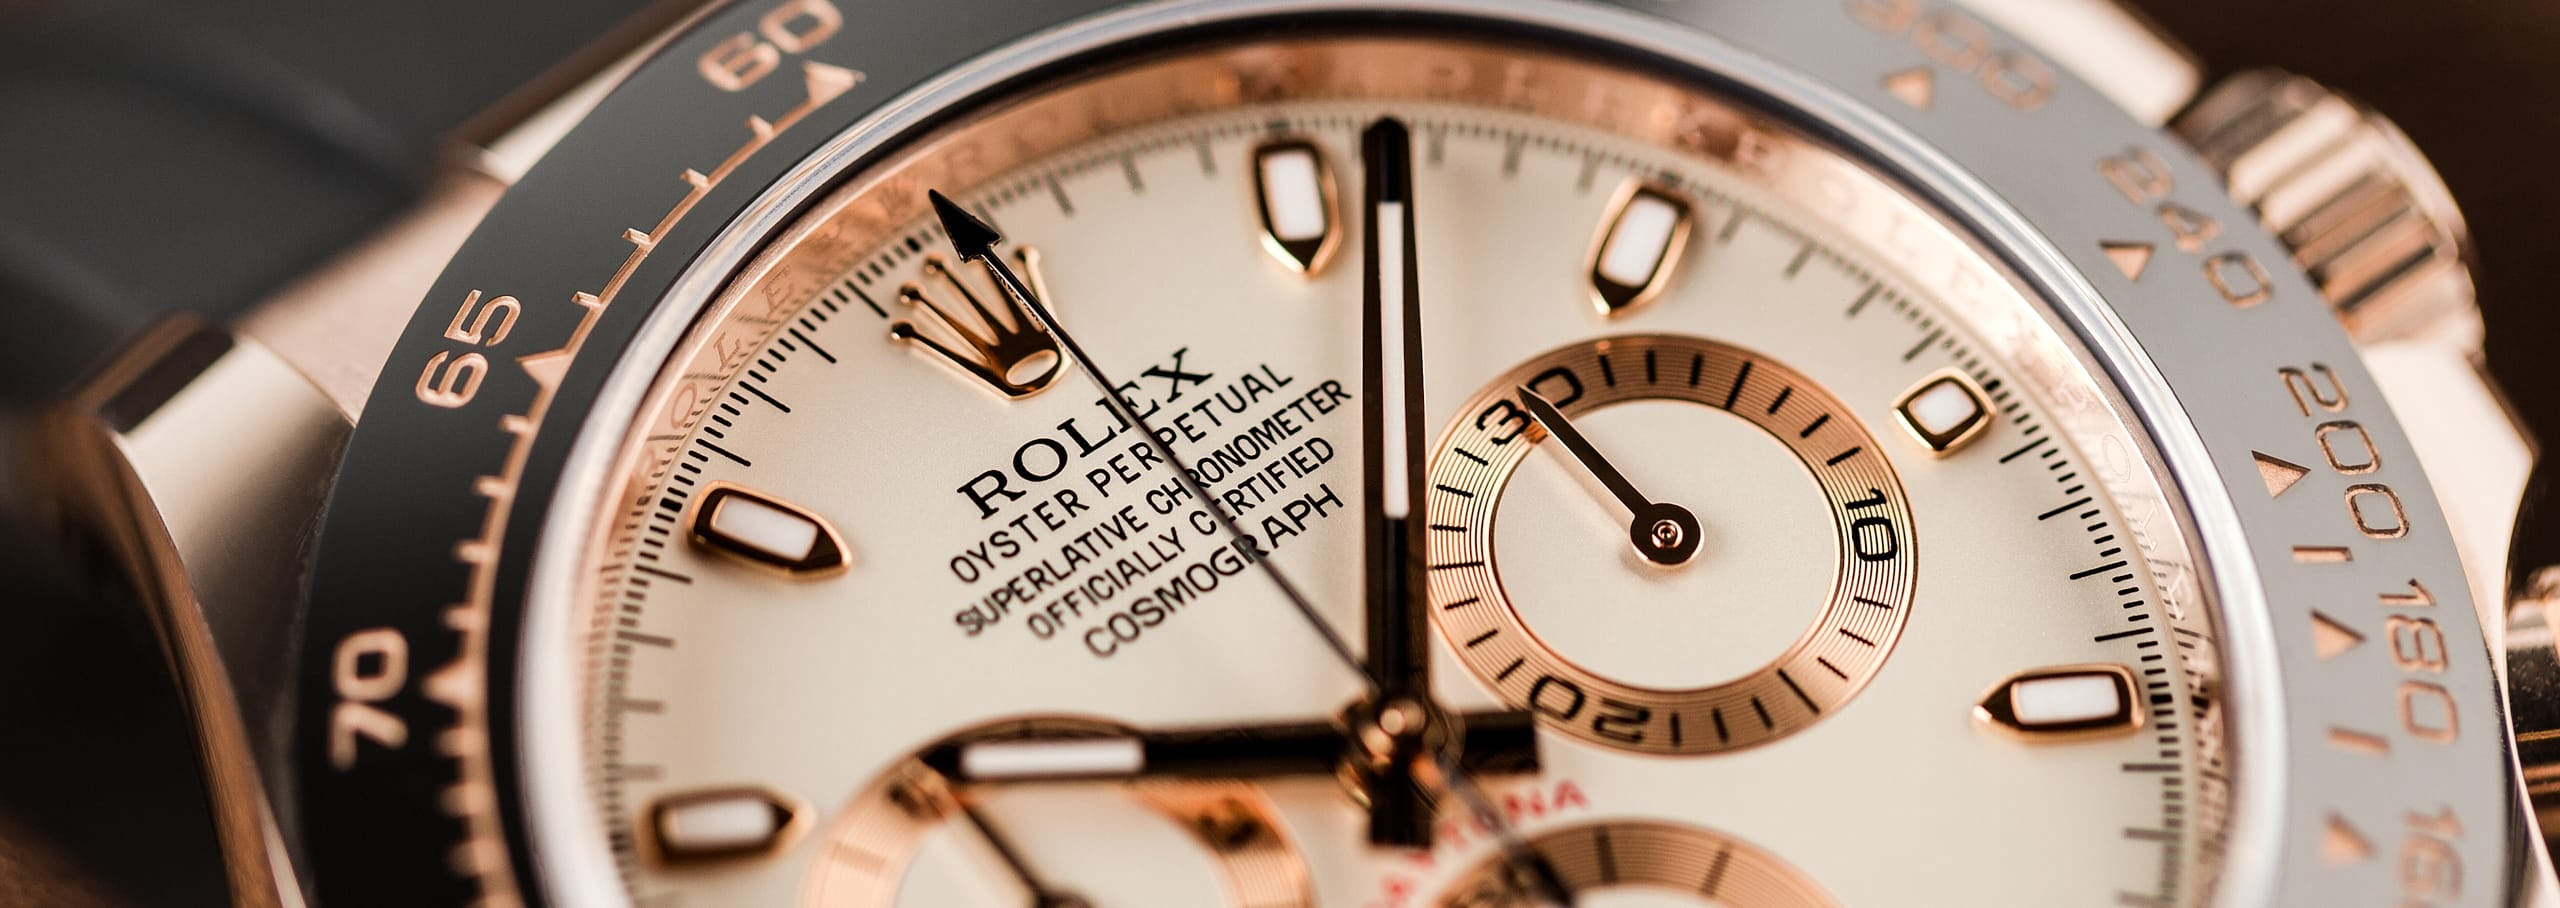 Proprietary Rolex Materials: What Do They All Mean?